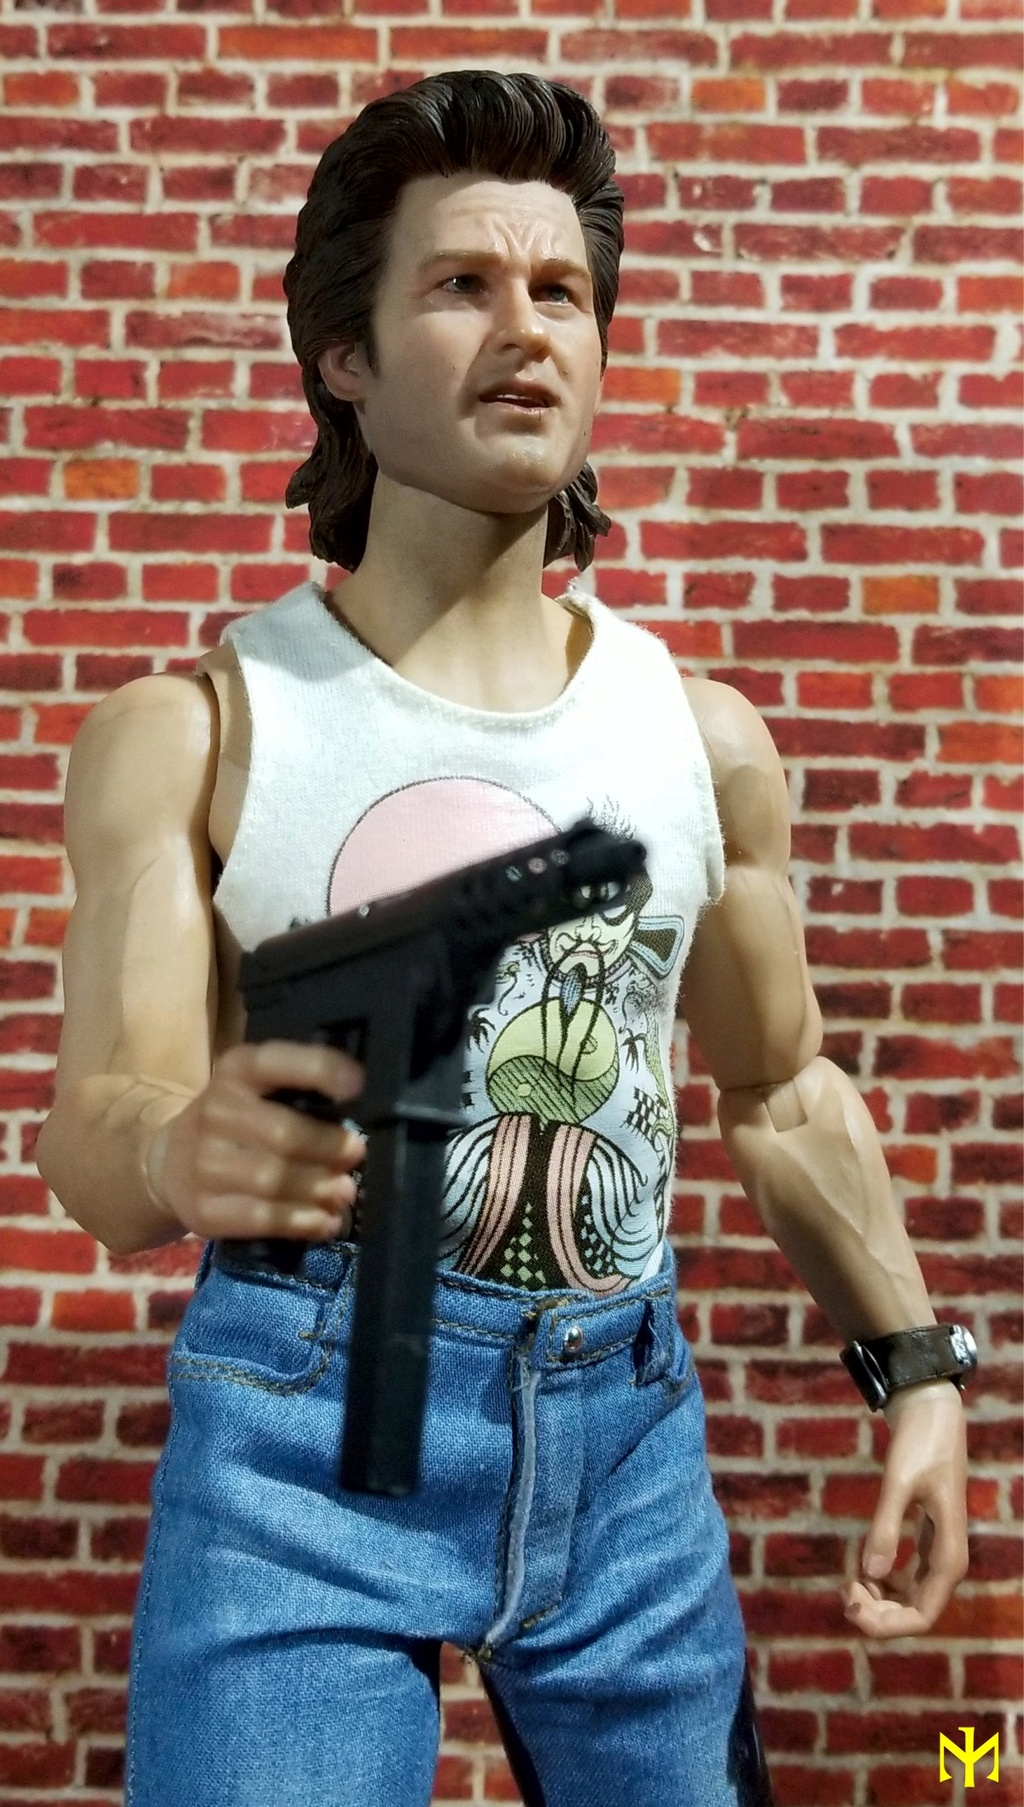 bigtroubleinlittlechina - Sideshow Jack Burton Detailed Review Sscjb110